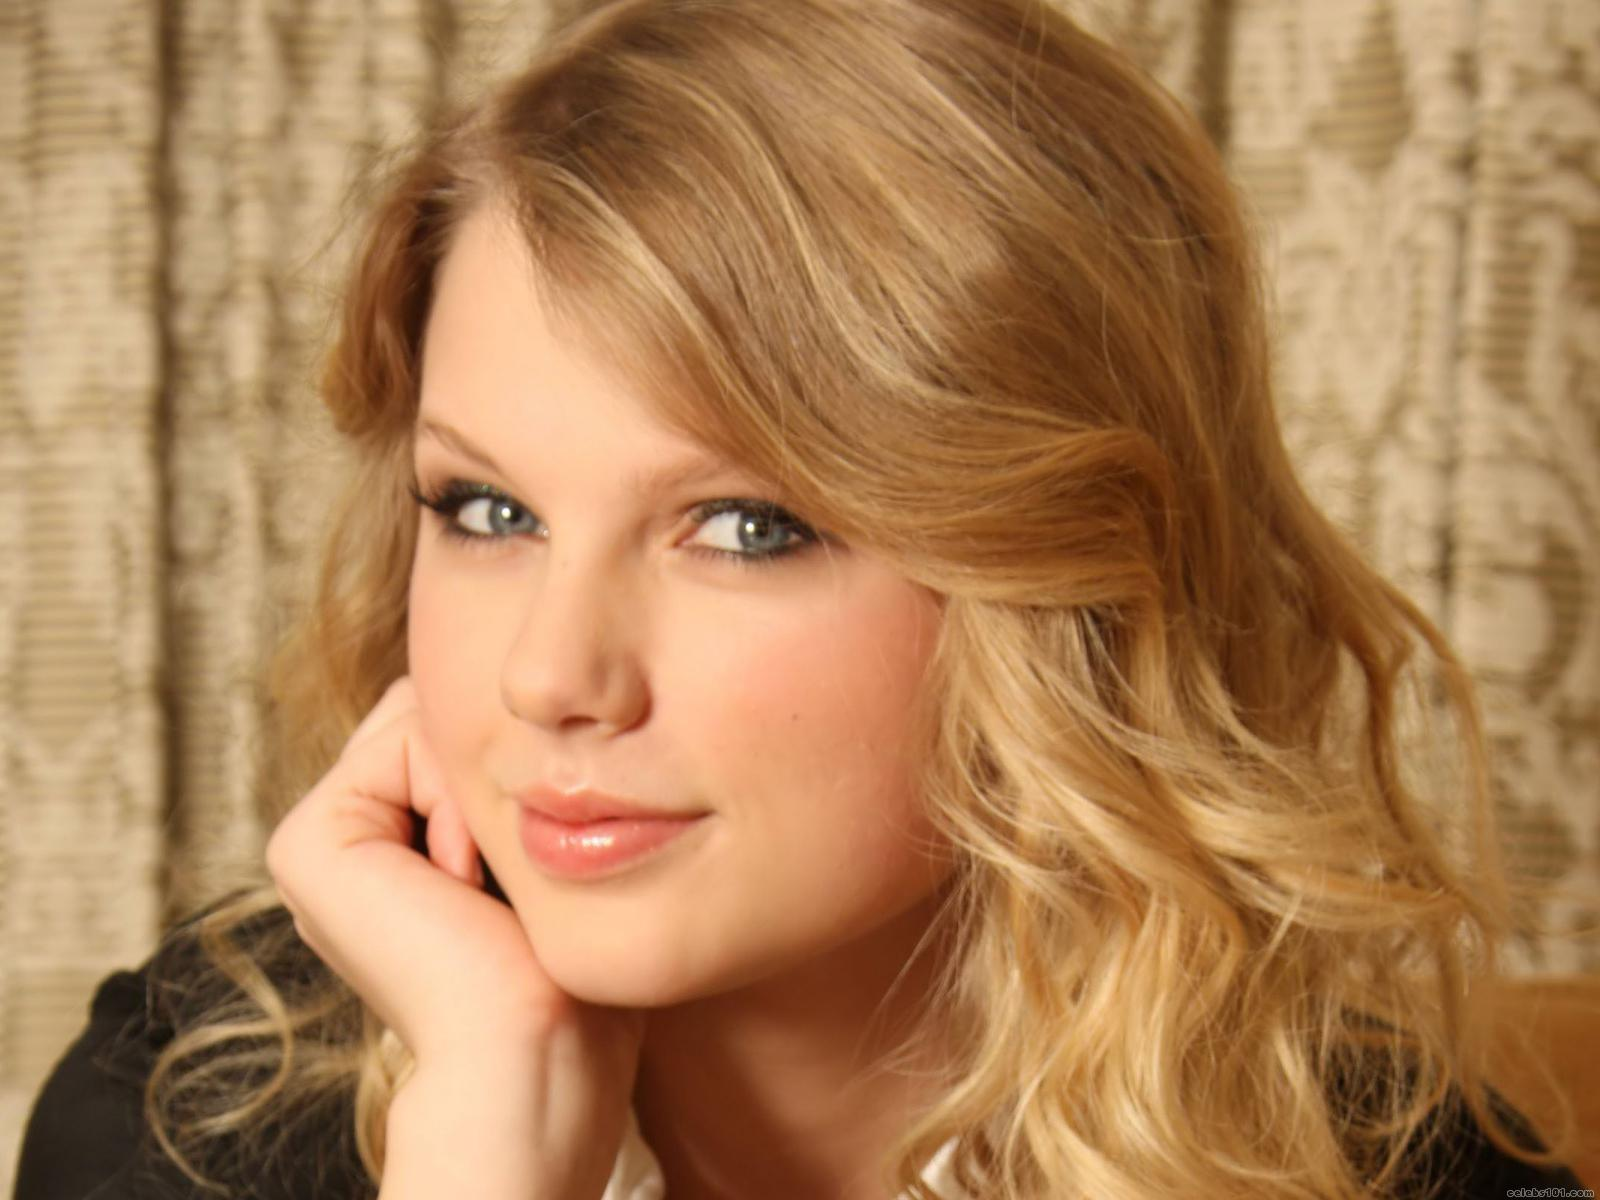 http://images5.fanpop.com/image/photos/27000000/-ly-taylor-taylor-swift-27035623-1600-1200.jpg